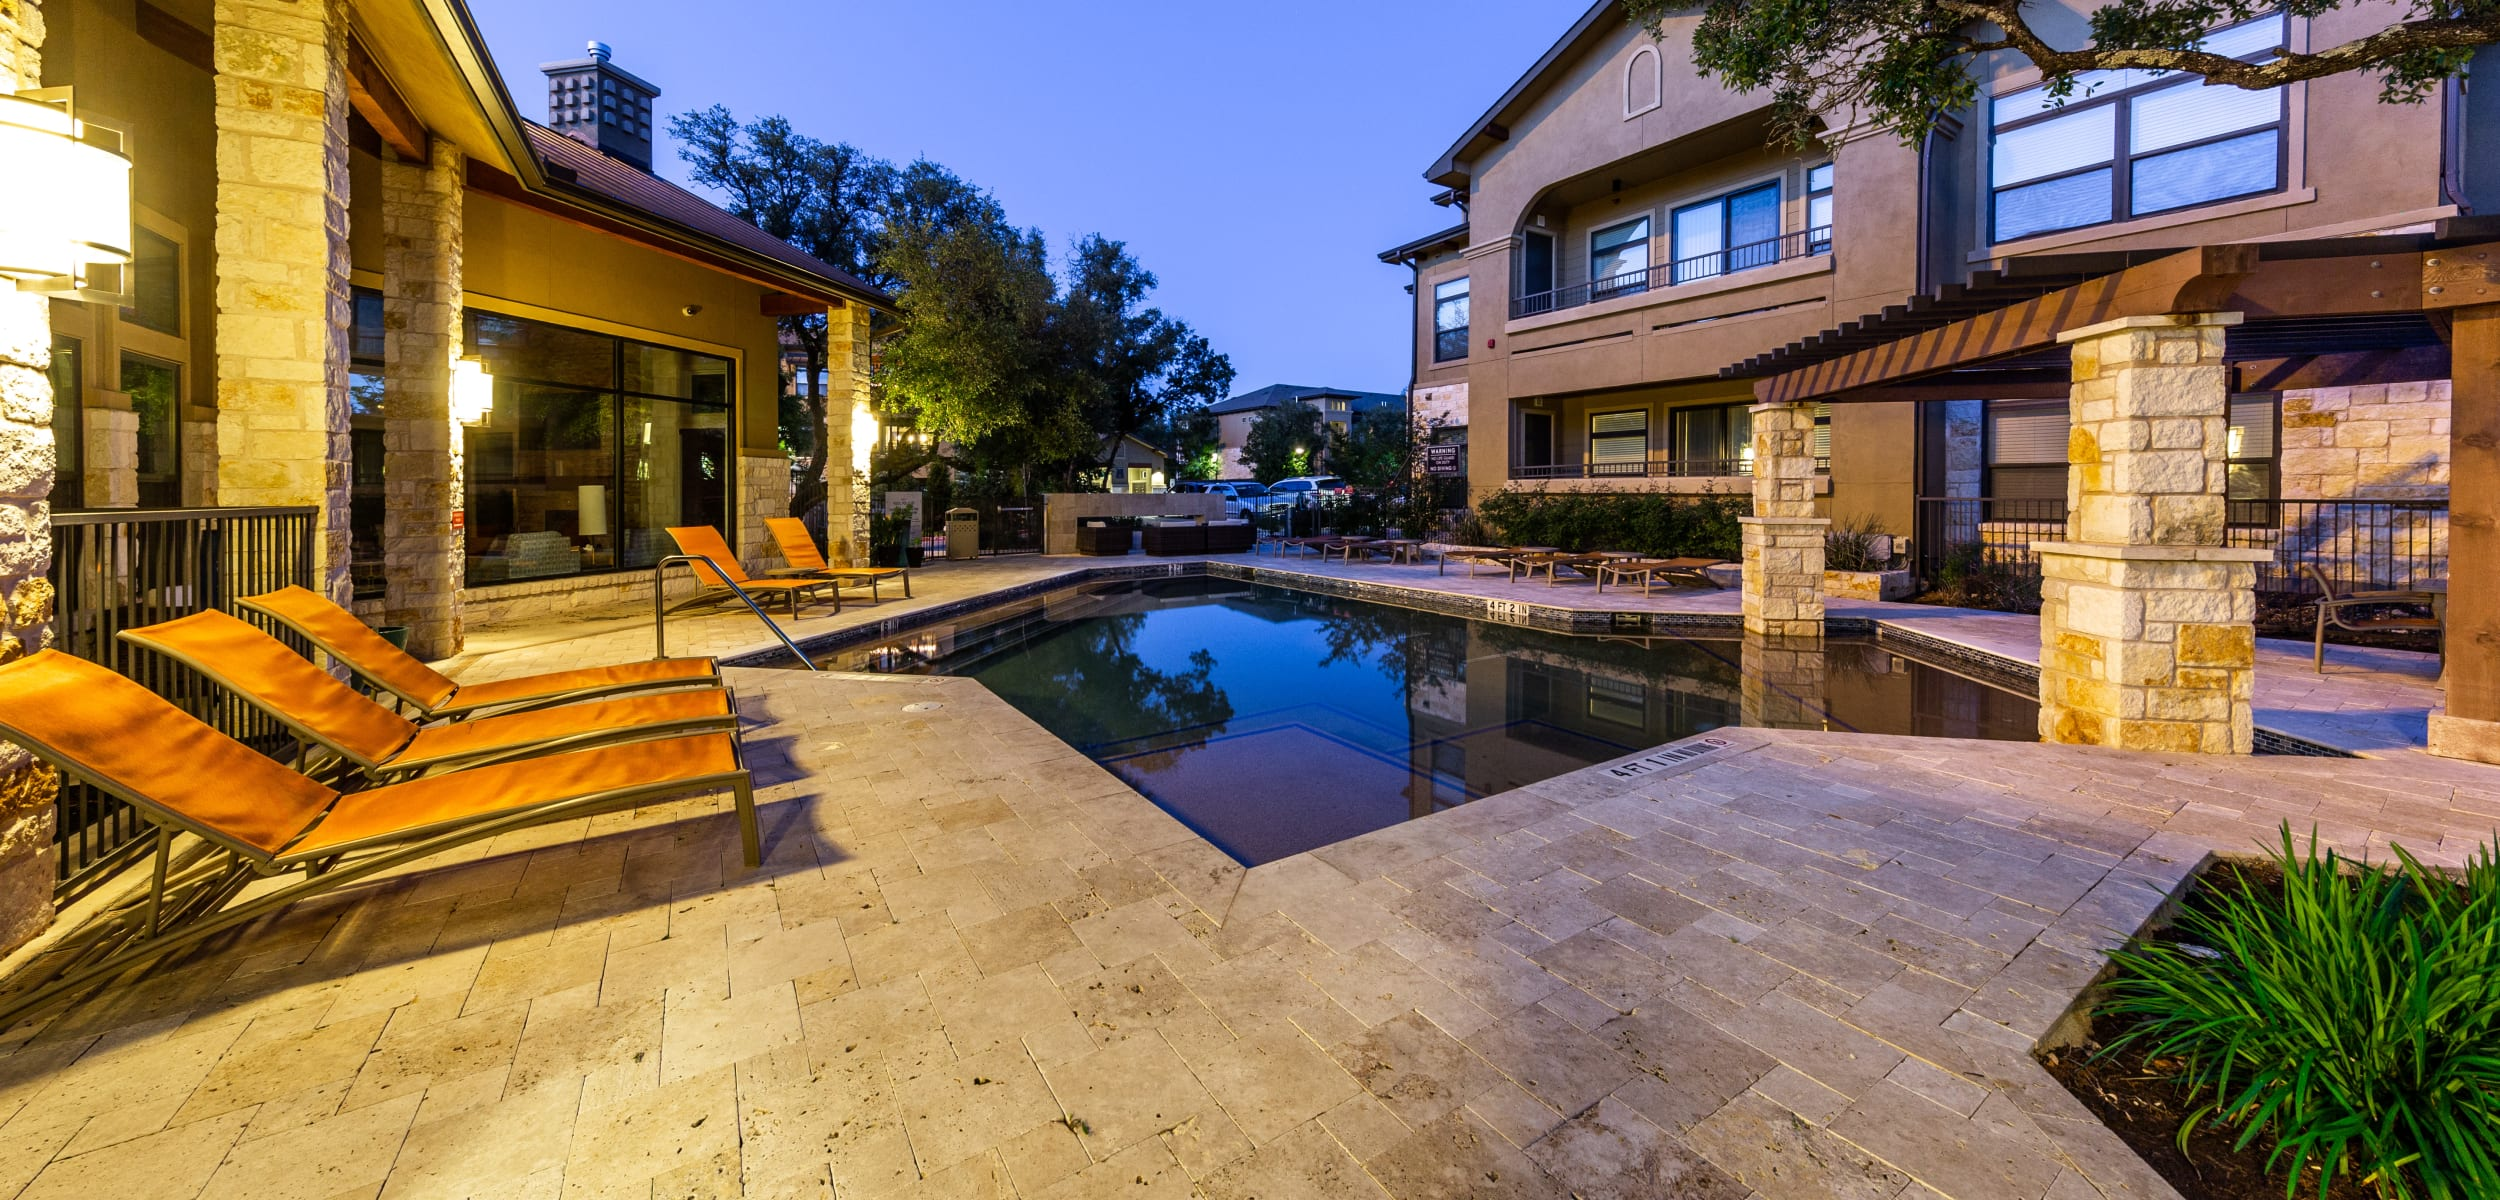 Outdoor pool at sunset with lounge chairs at Marquis at Barton Trails in Austin Texas,